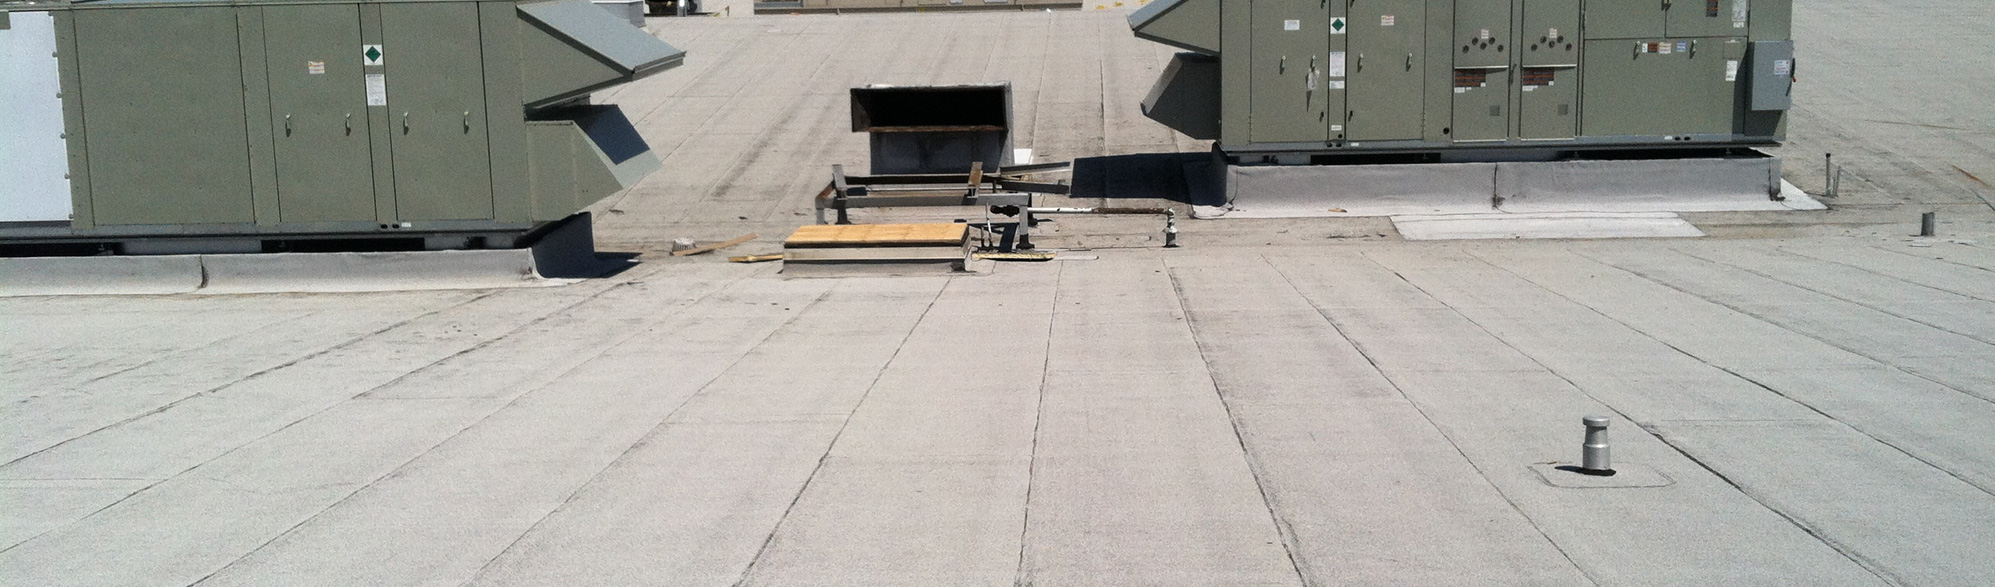 Contractor For Bitumen Roof System A 1 Roofing Chicagoa1